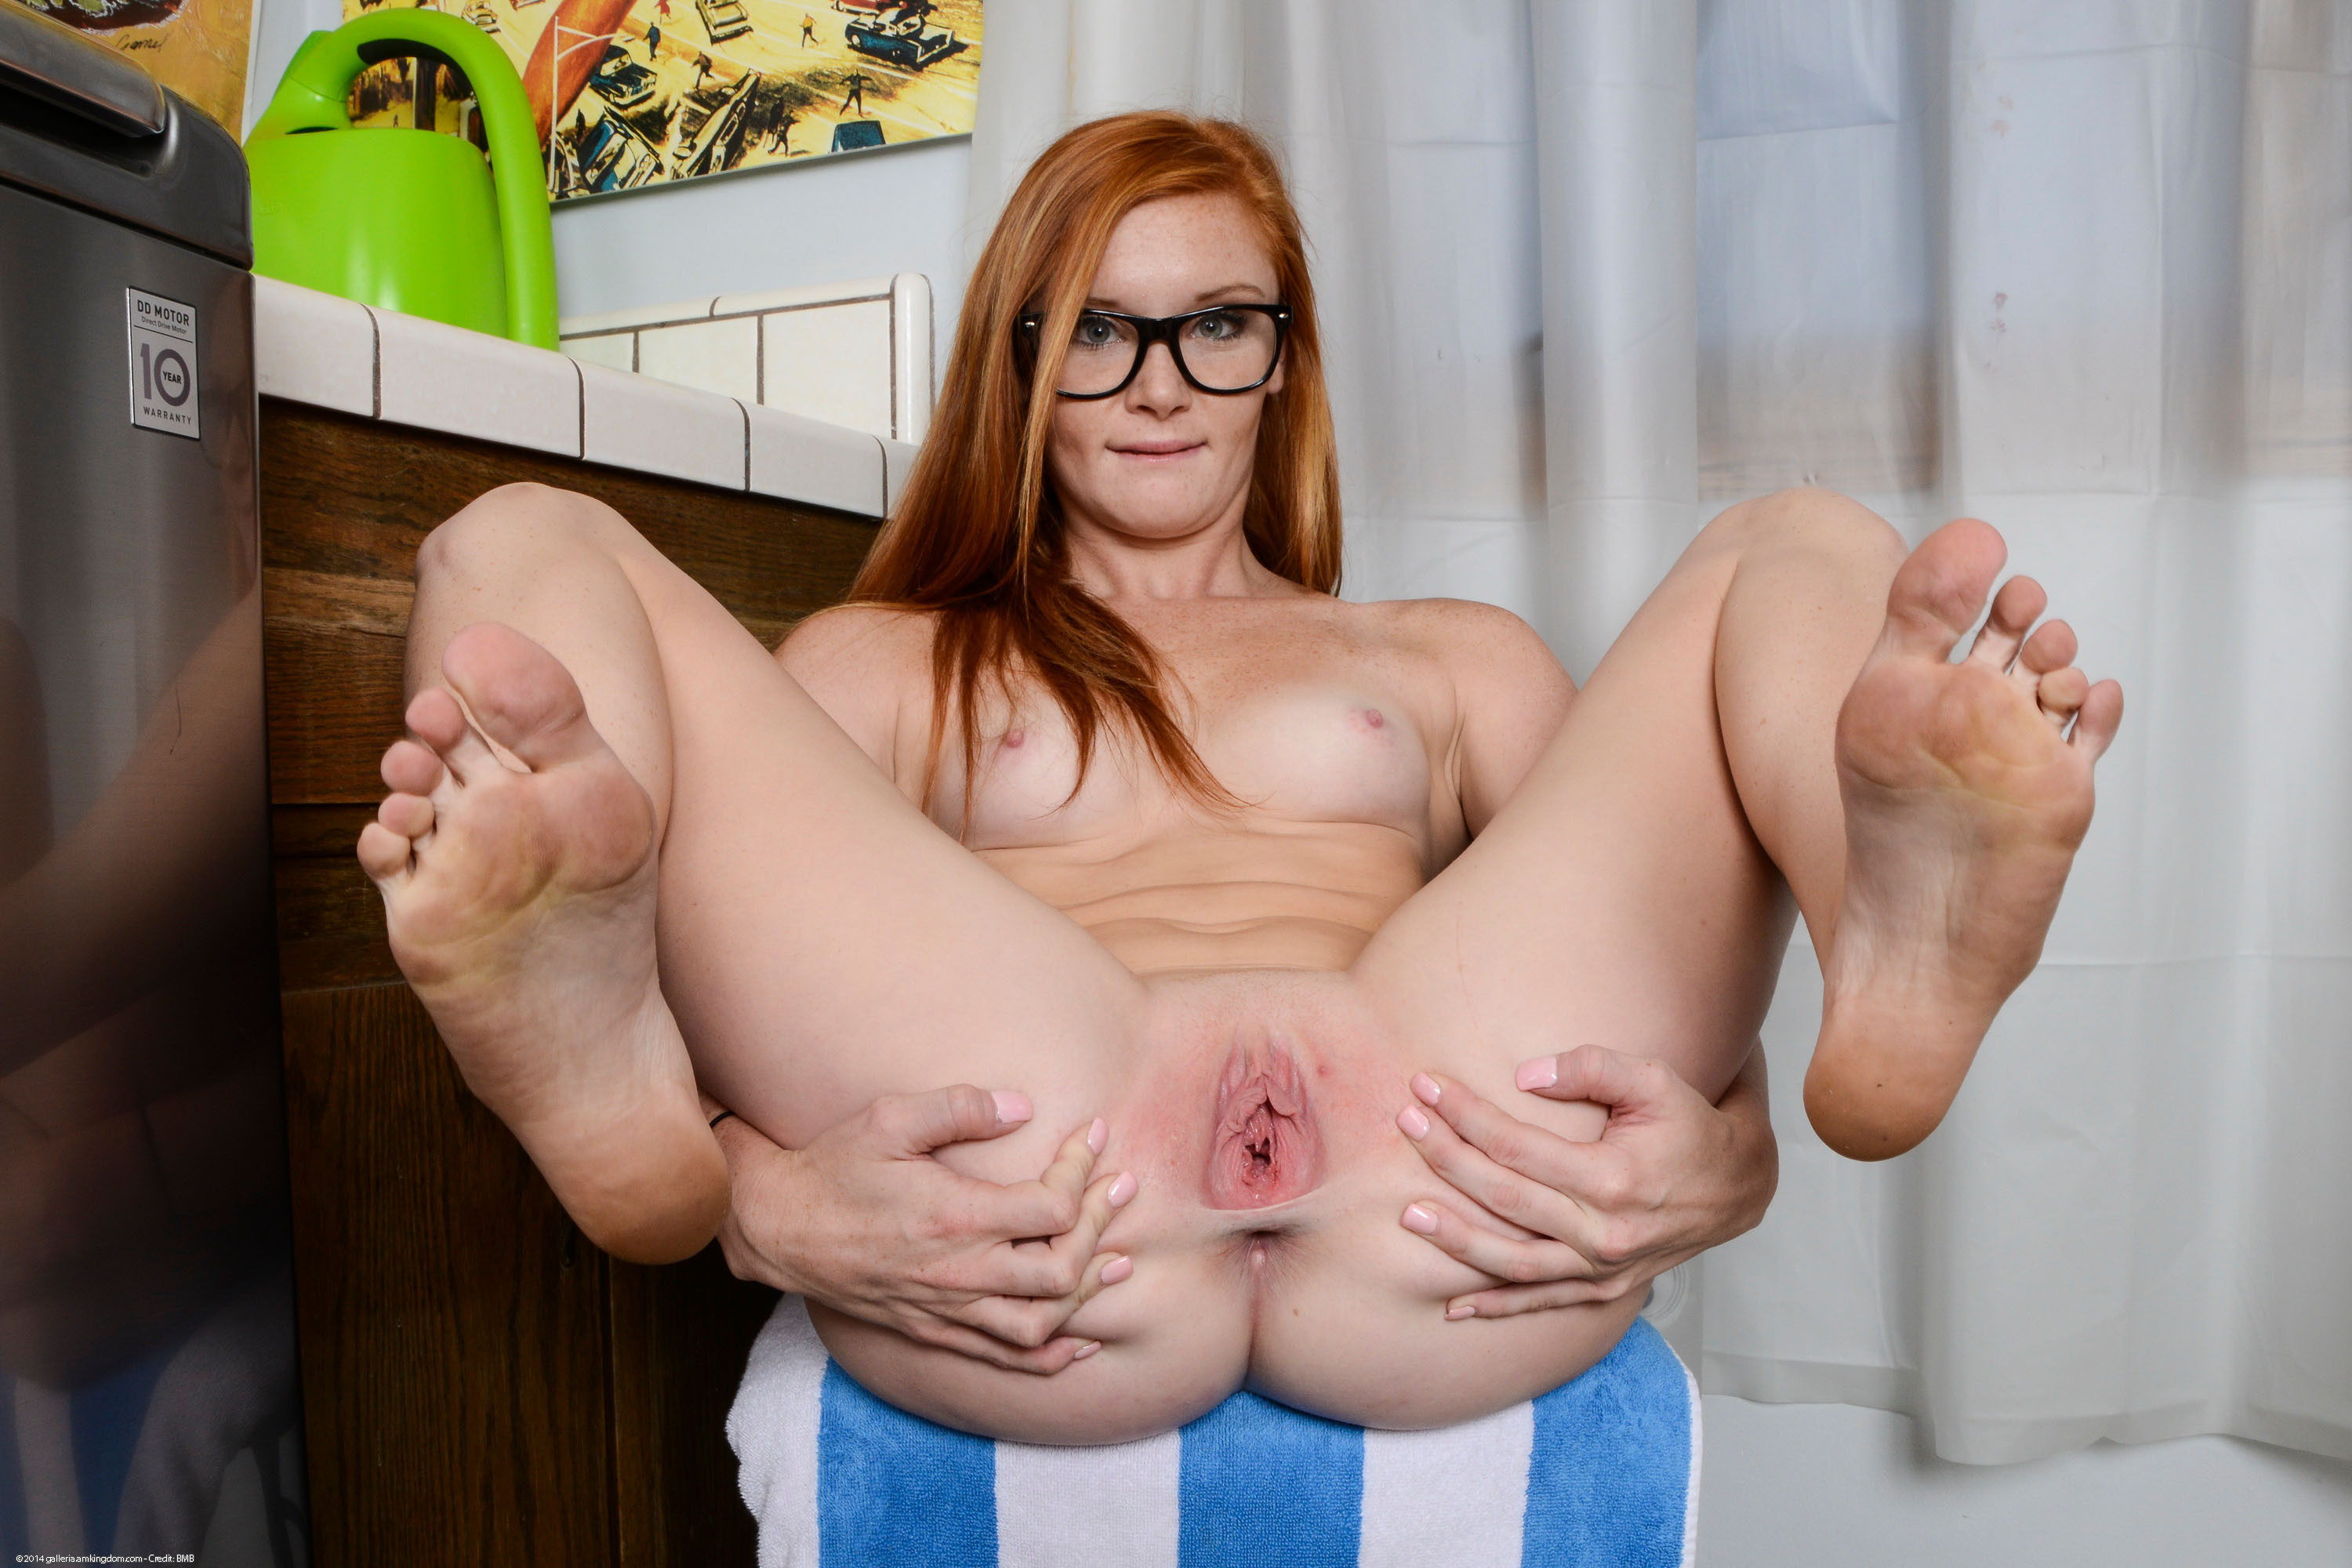 Redhead Shemale Kitty Sweet Tgirl Spreading Her Ass